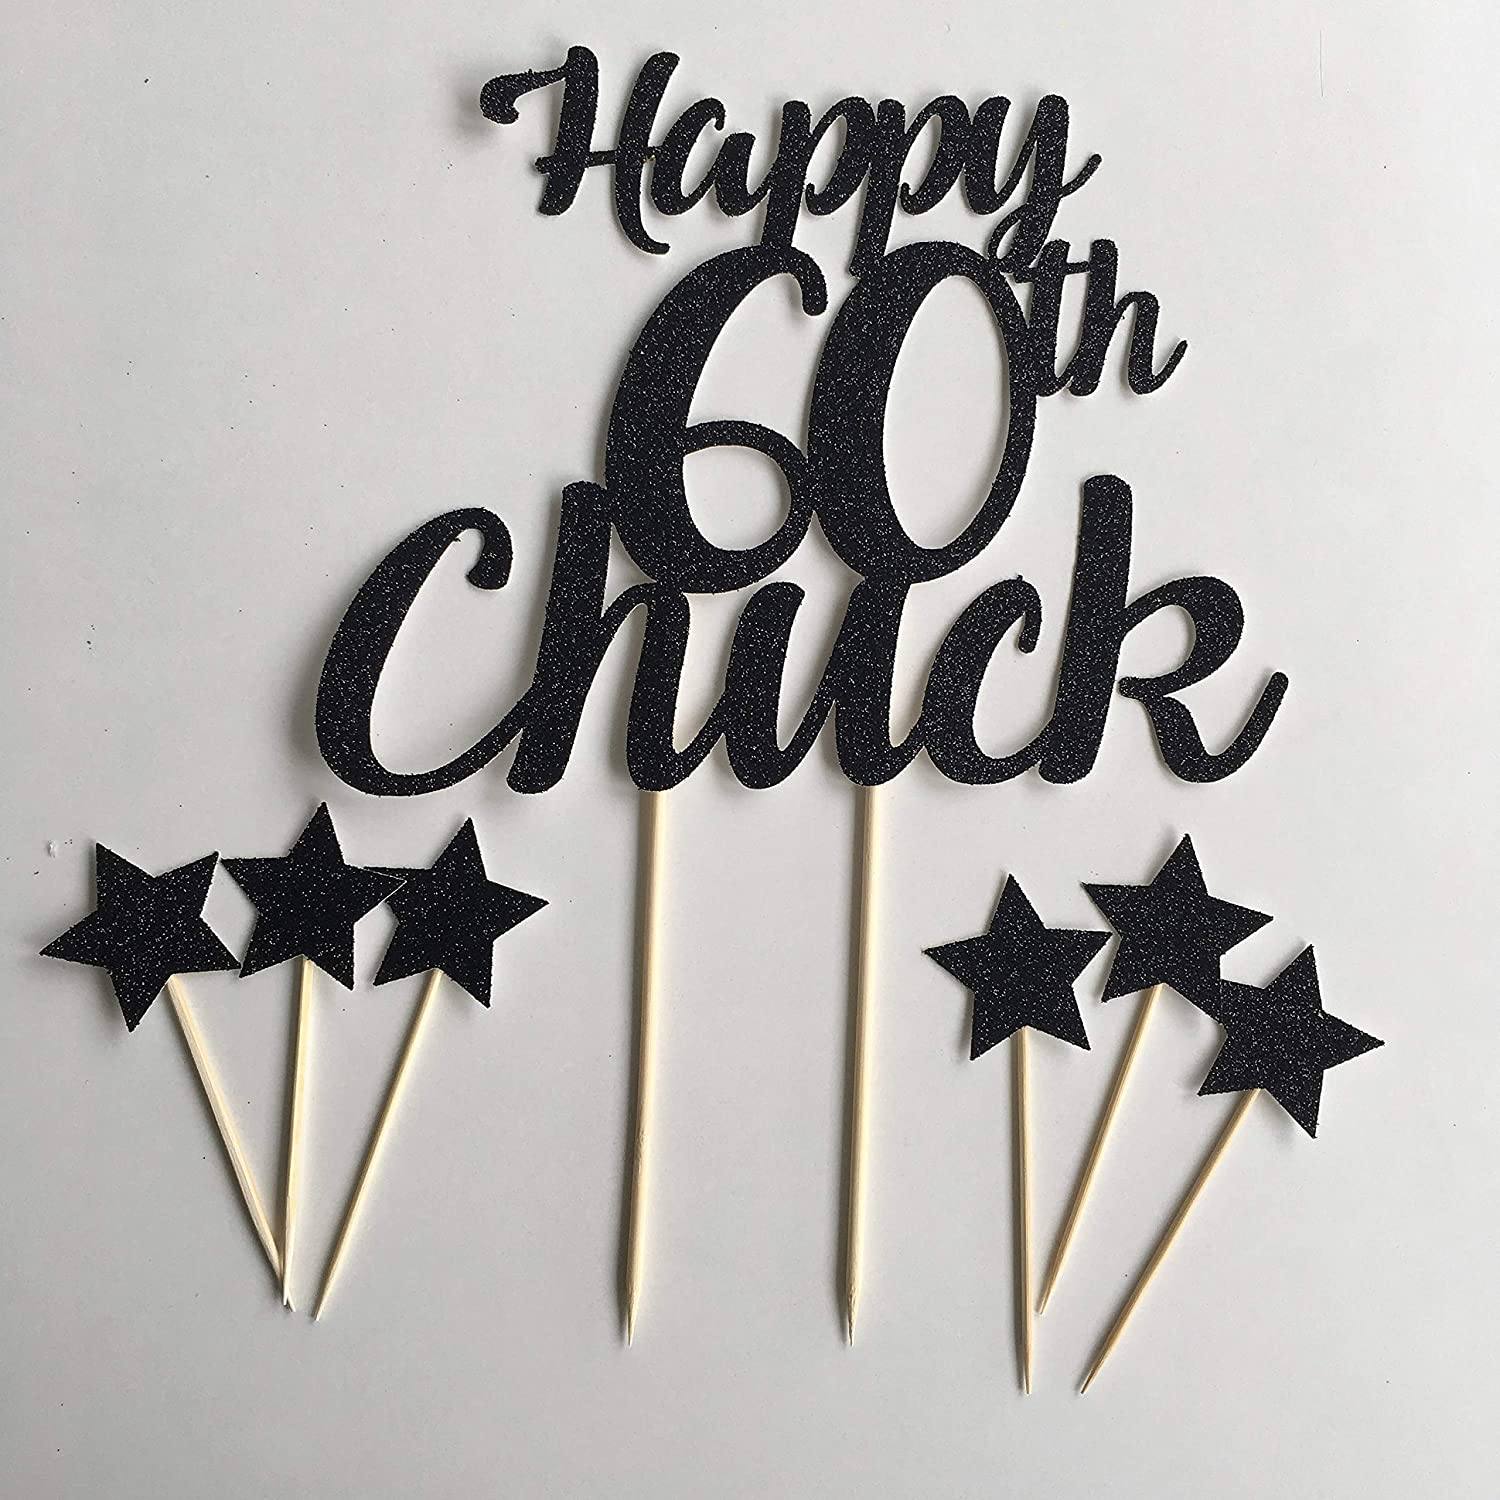 birthday party for him gold Personalised cake topper with star cup cake toppers silver blue glitter cake topper black party set